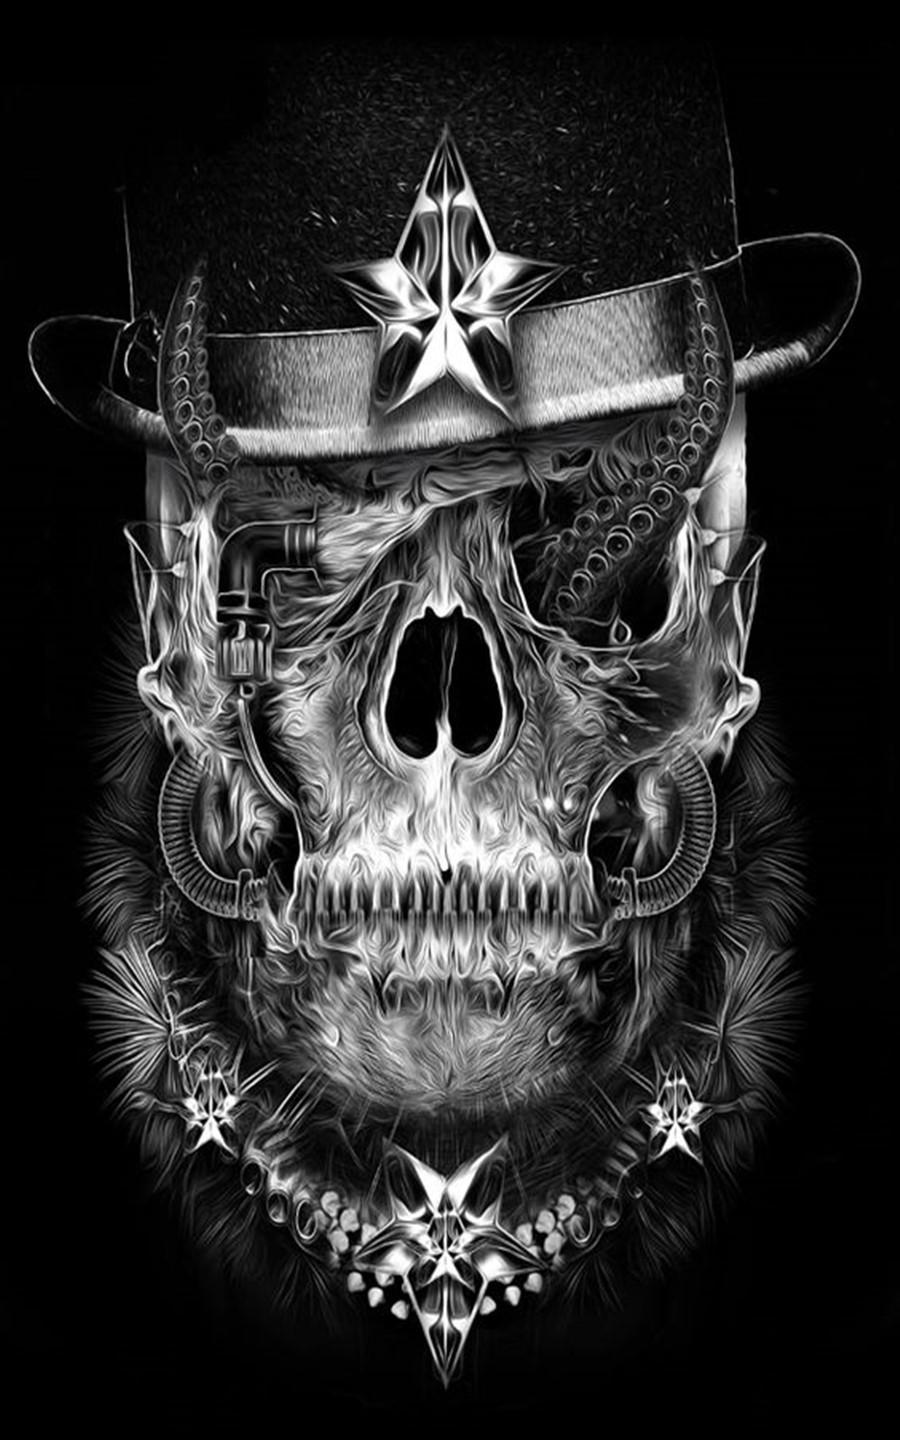 Skull Wallpaper for Android - APK Download